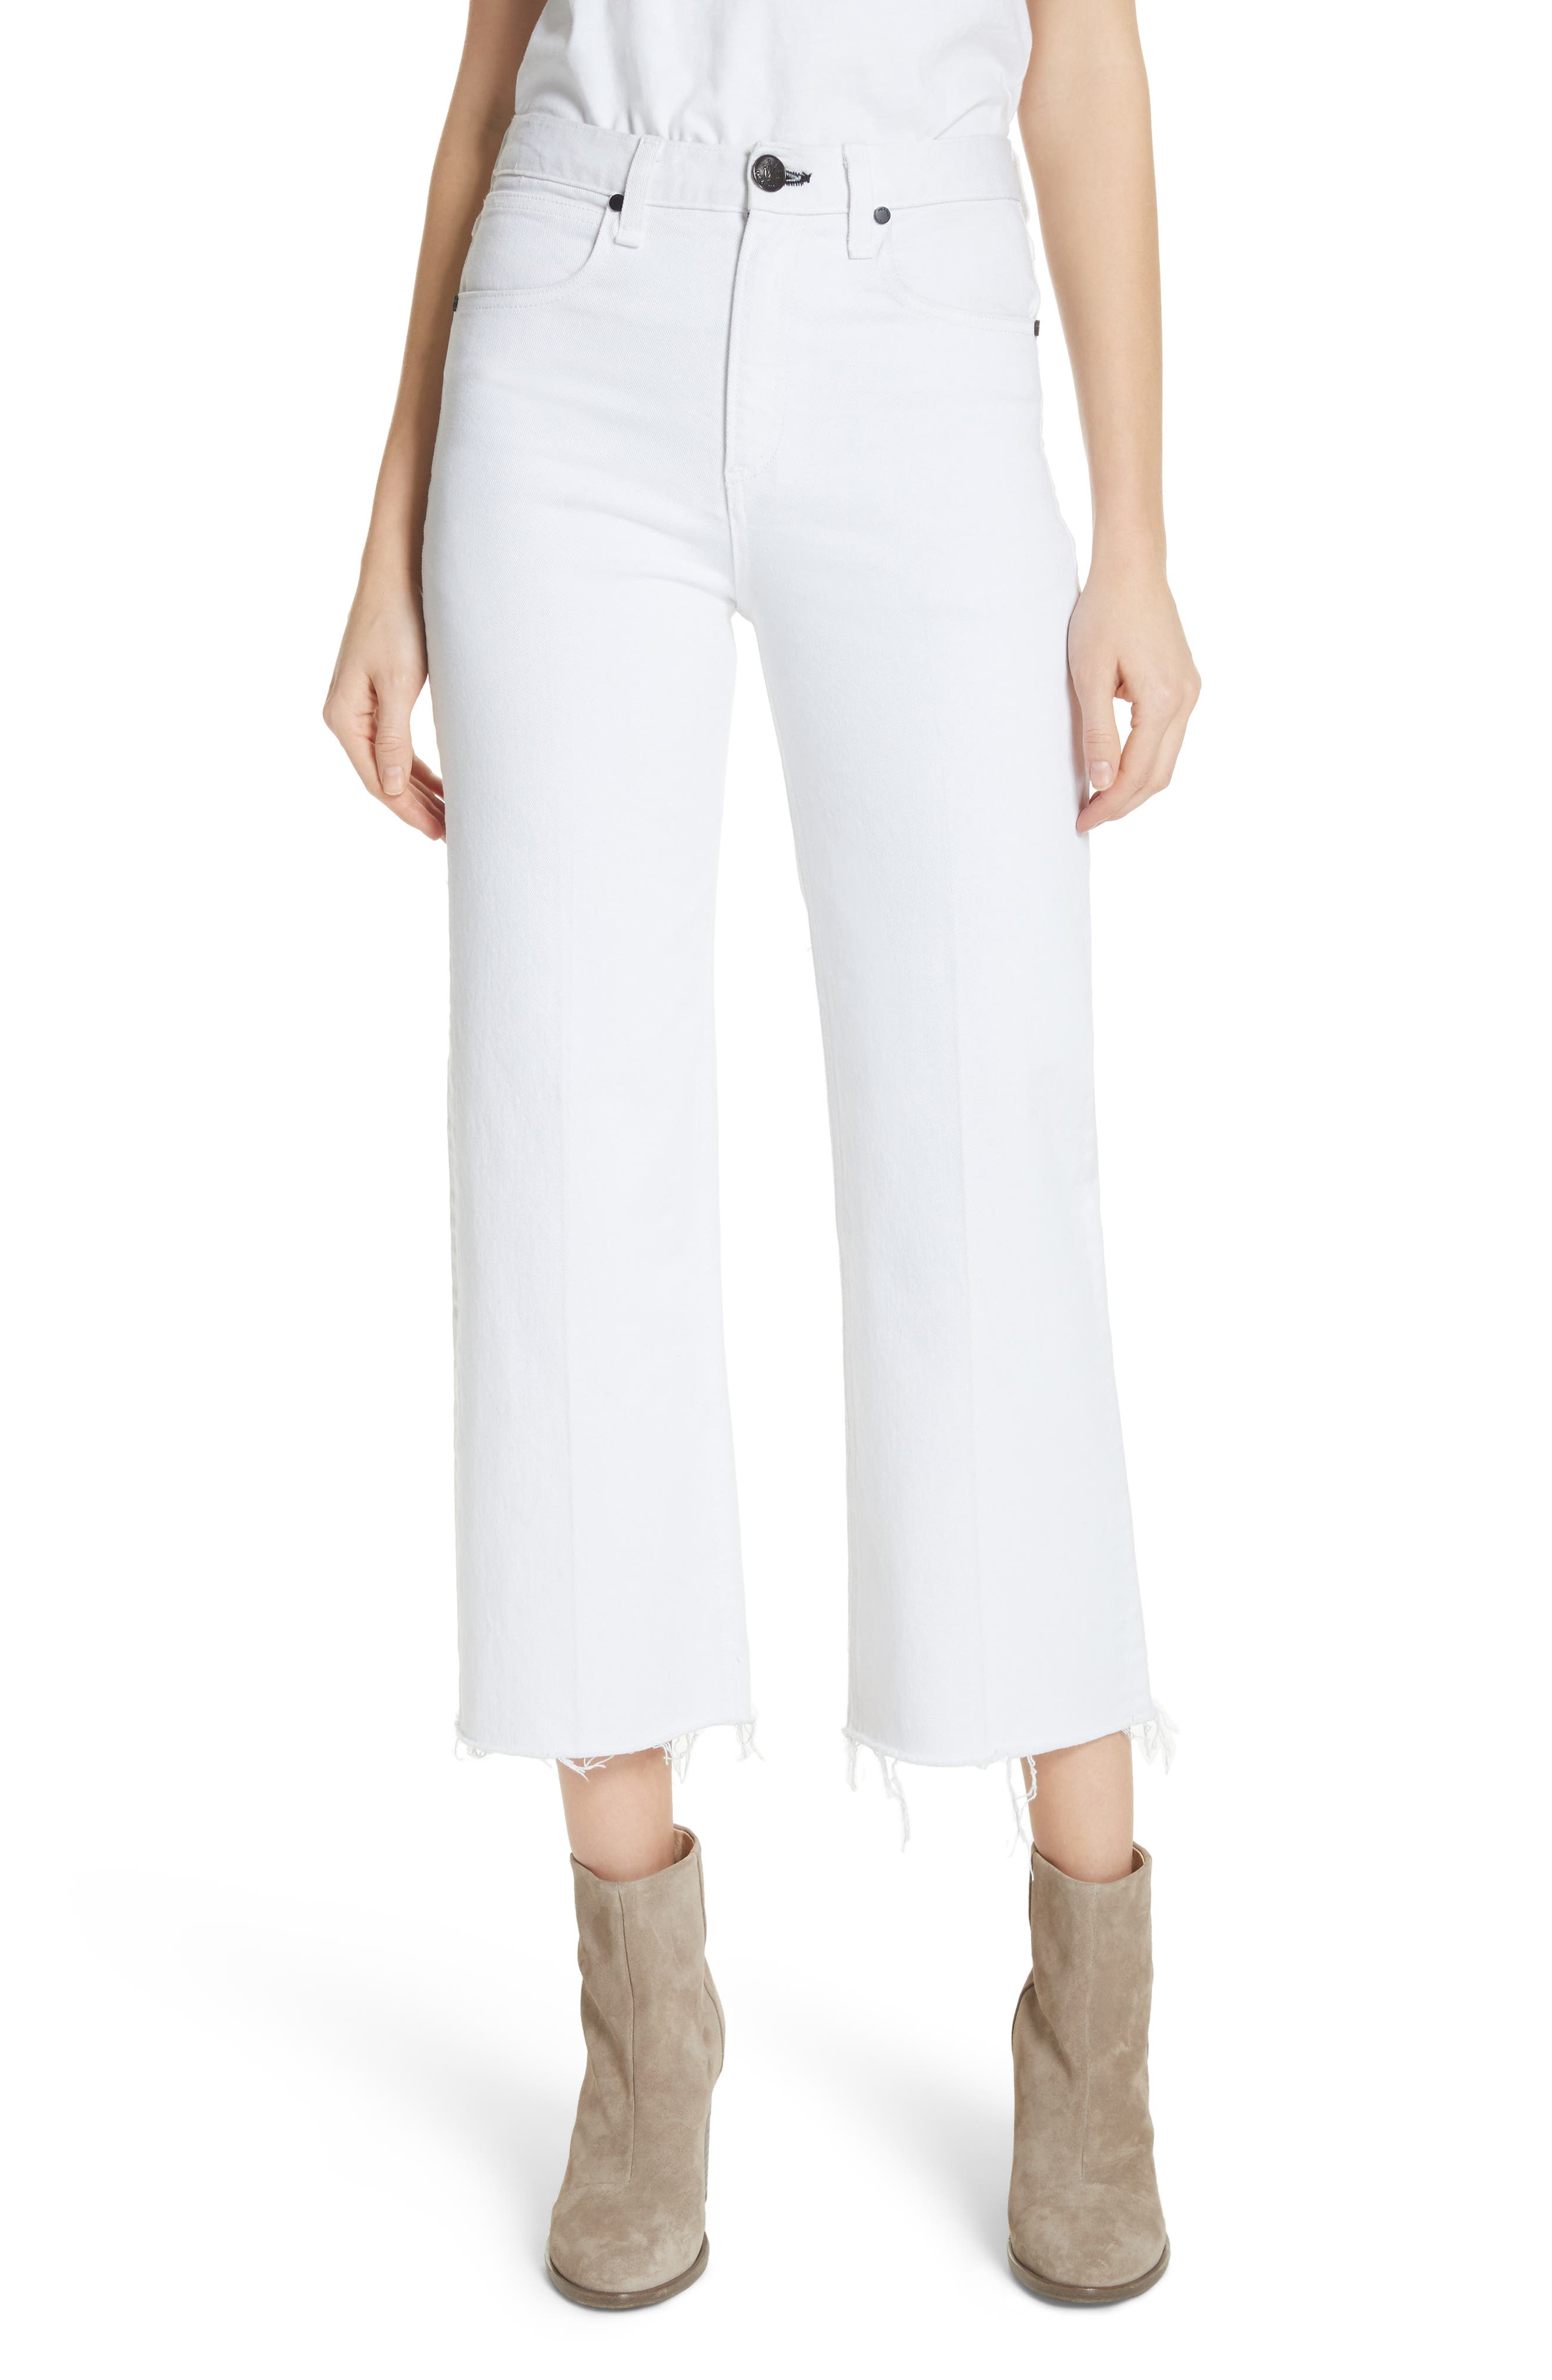 Justine High Waist Ankle Wide Leg Trouser Jeans,                             Main thumbnail 1, color,                             White